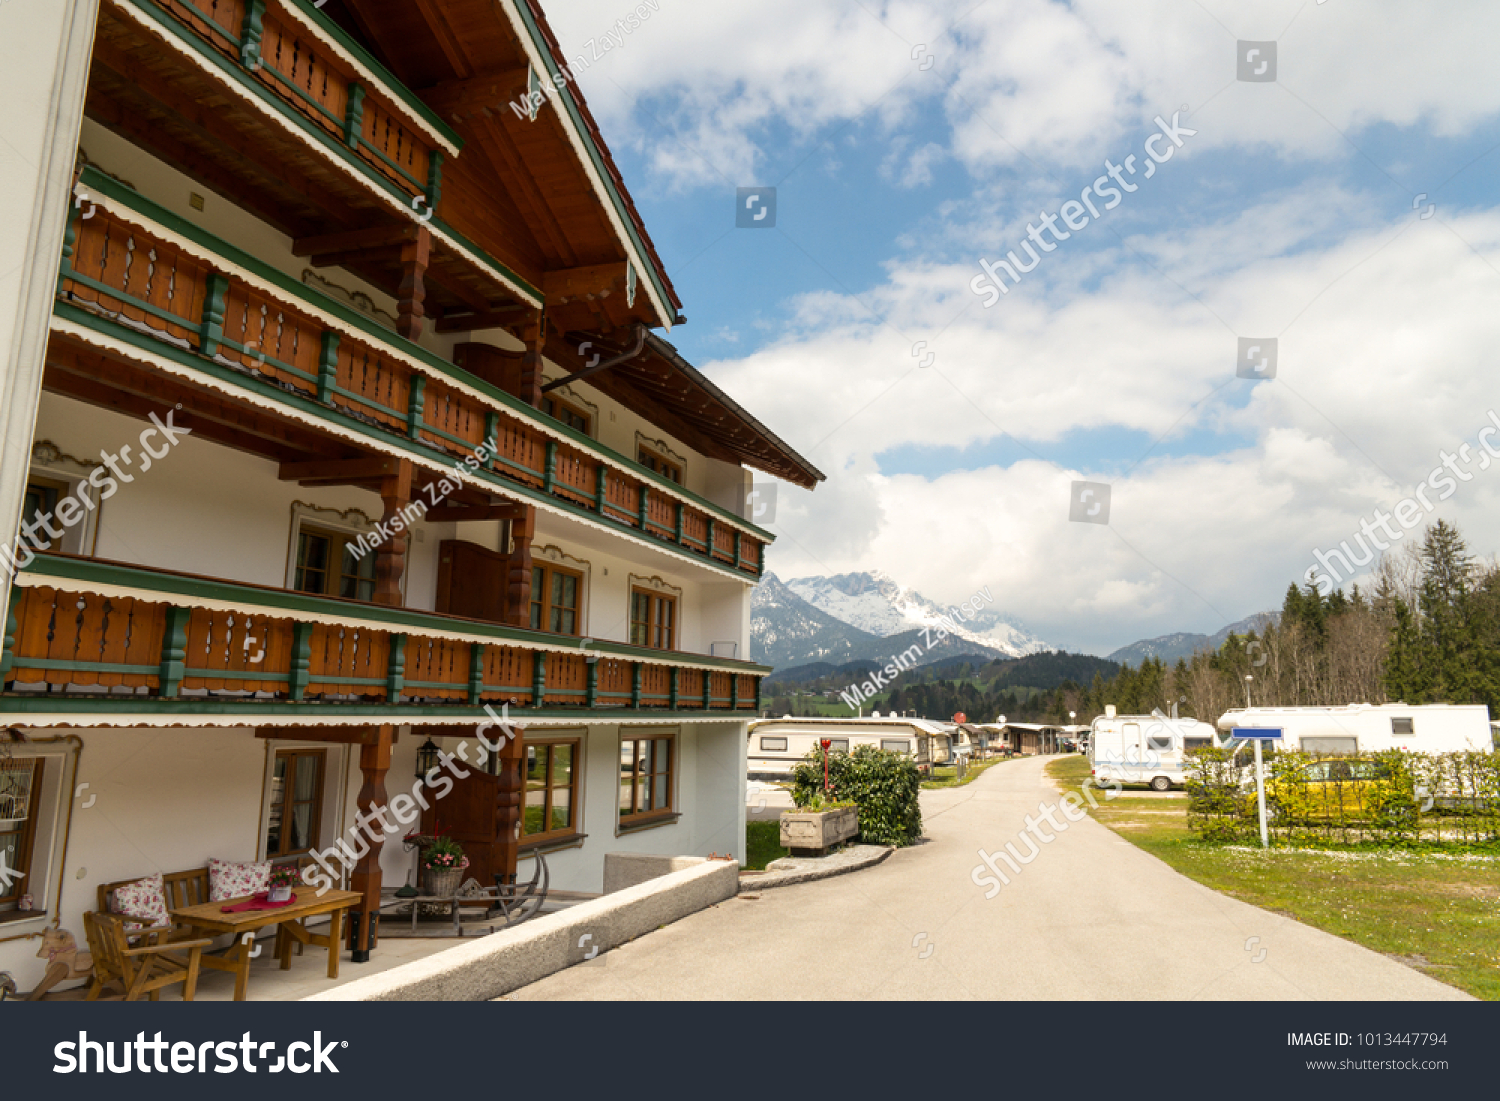 4cd91d0f80 The View of Hotel and Camping at Konigssee in Berchtesgaden Land District  in Bavaria